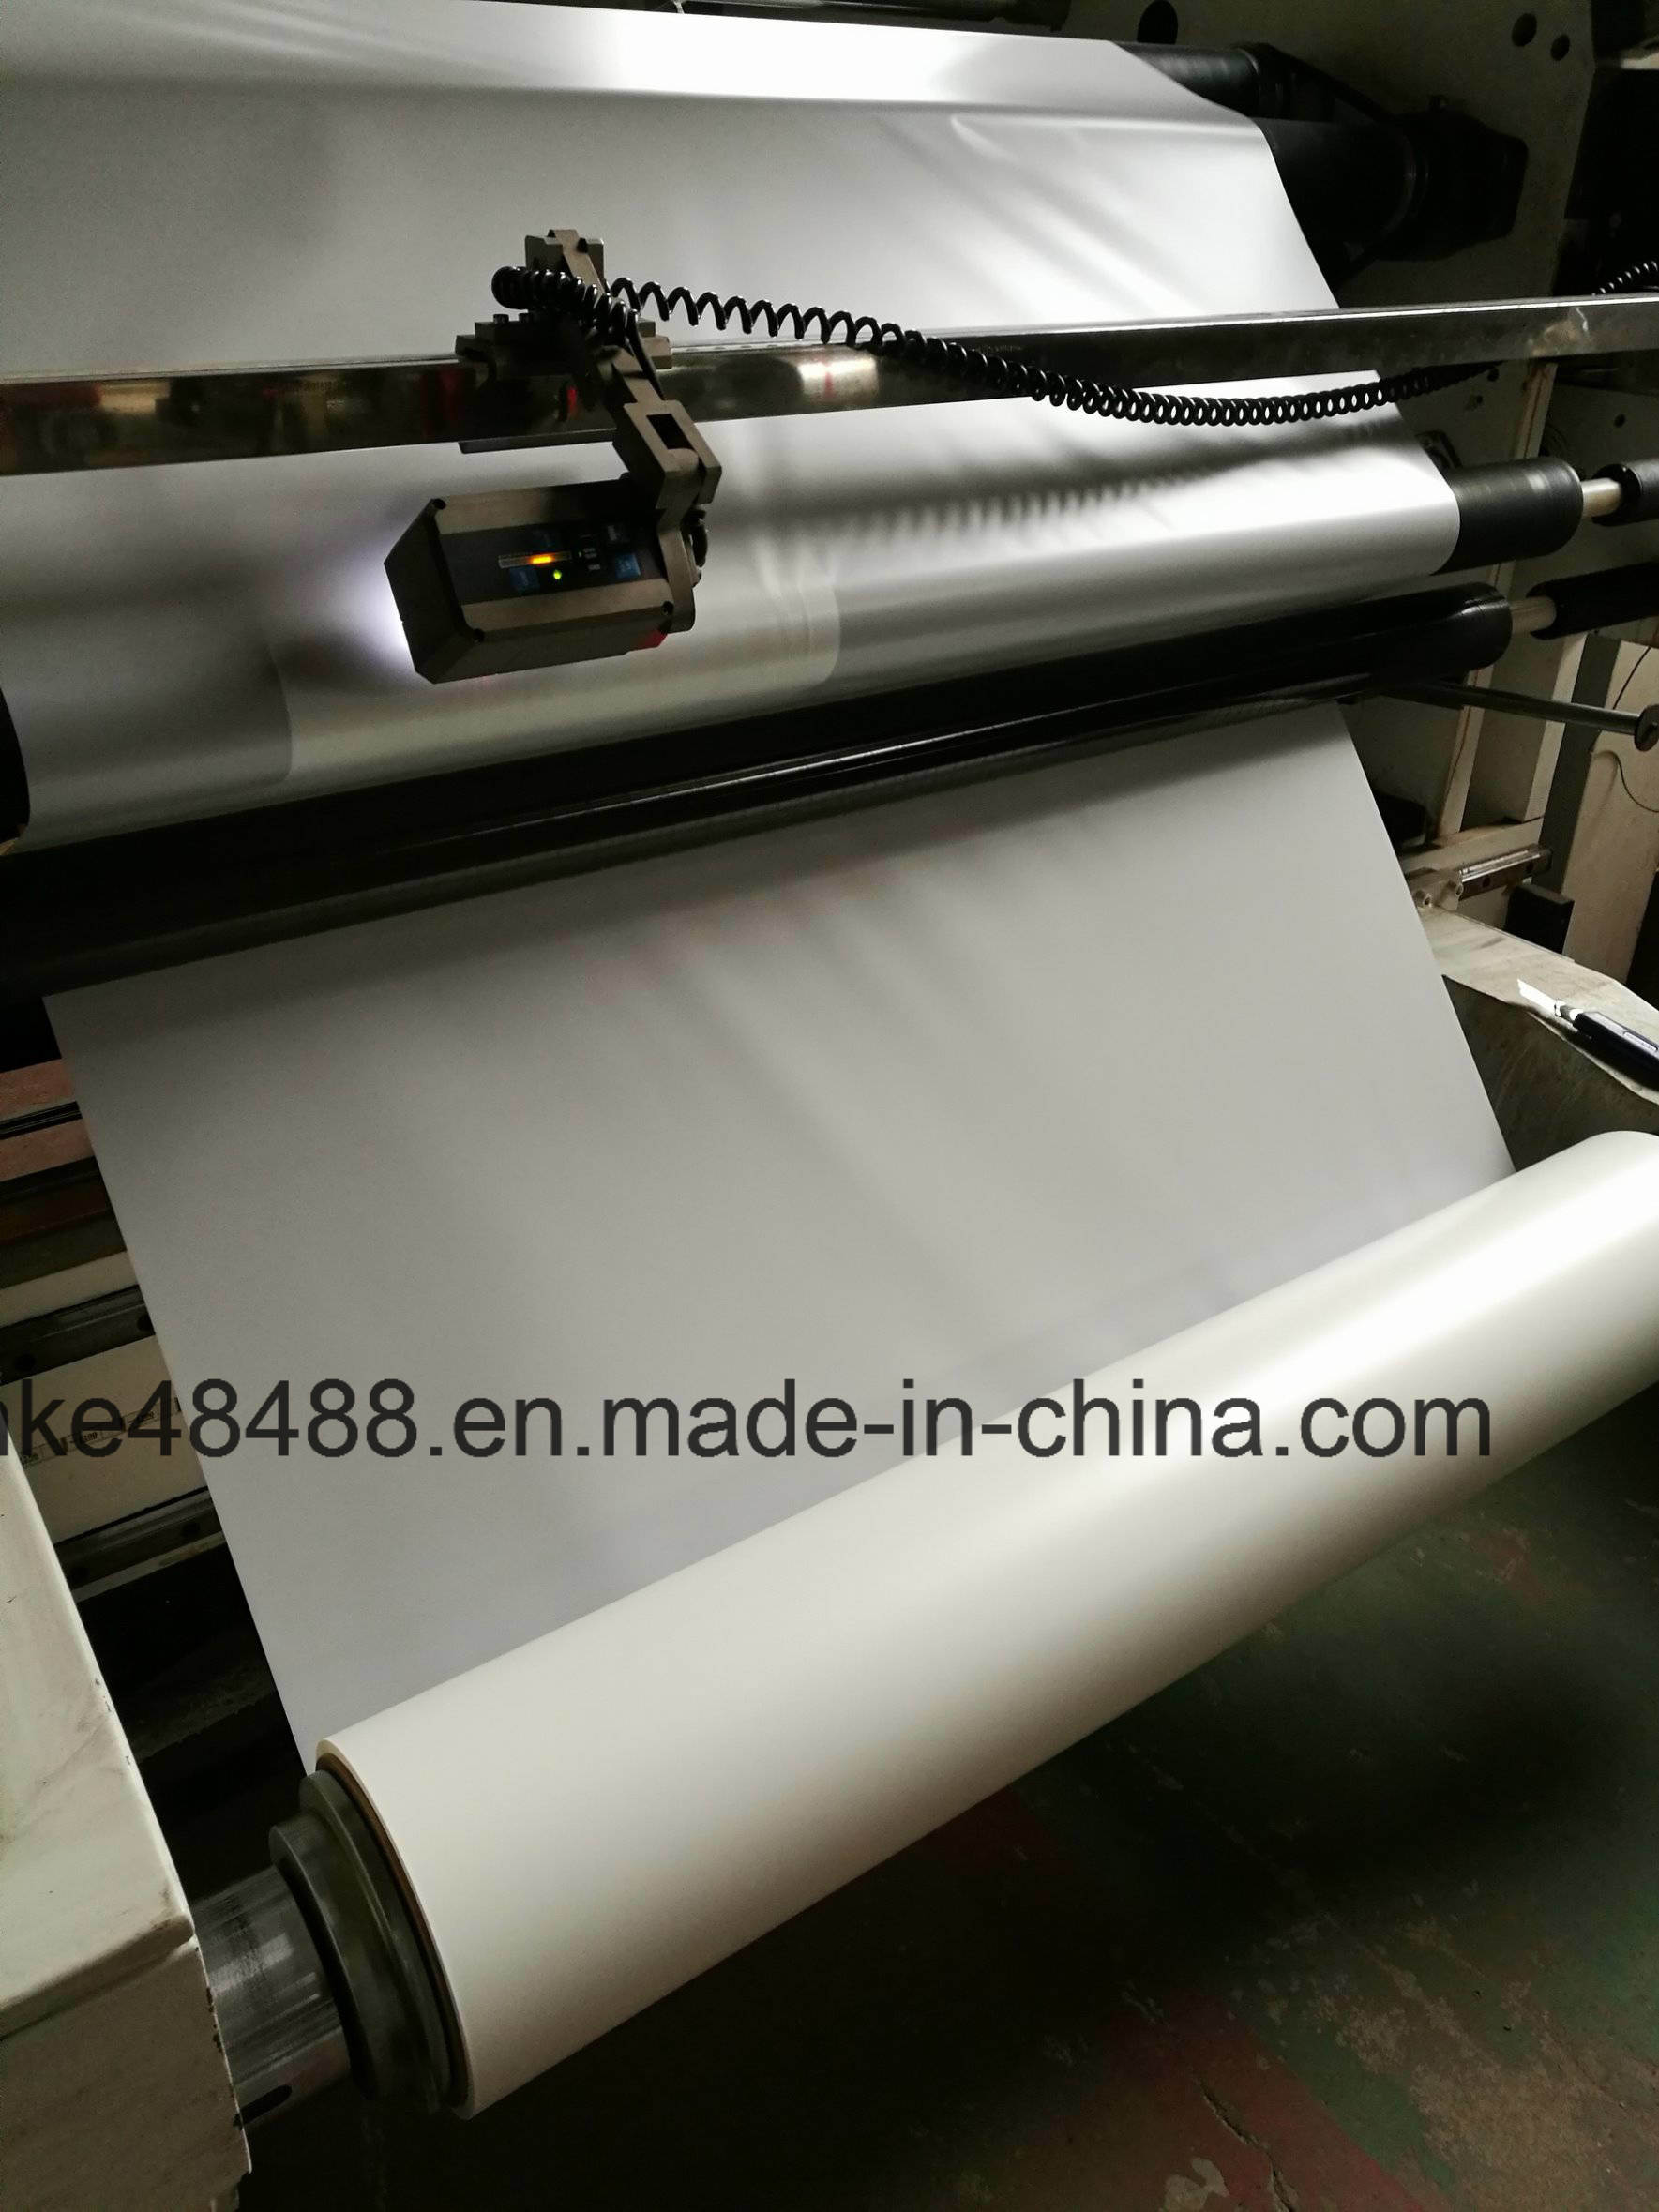 Matte Thermal Transfer Pet Film, BOPET Film